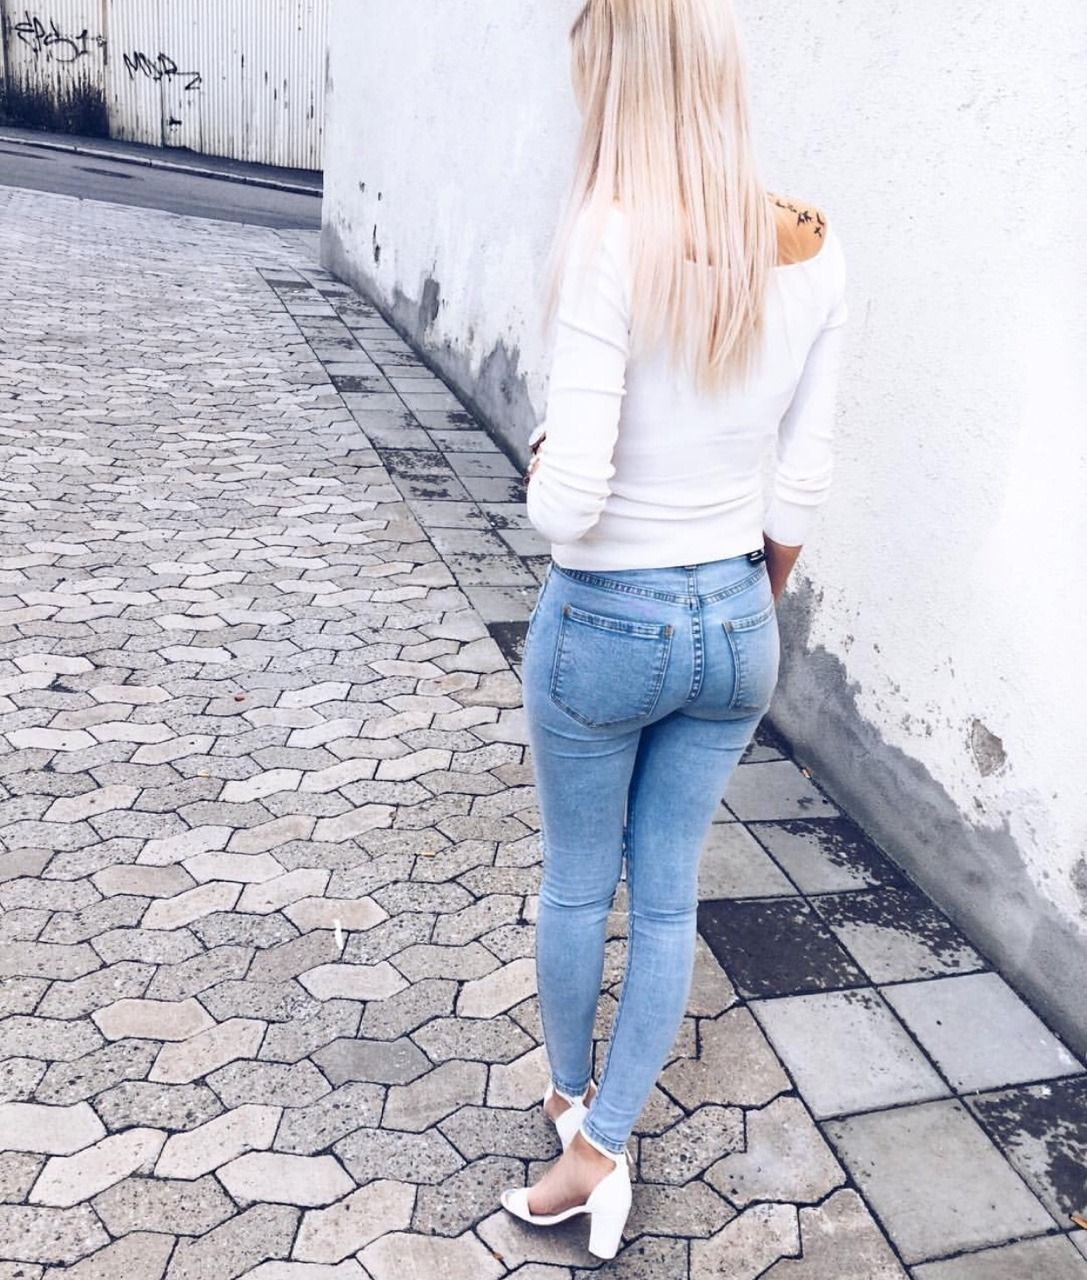 Slim vs. Straight Jeans